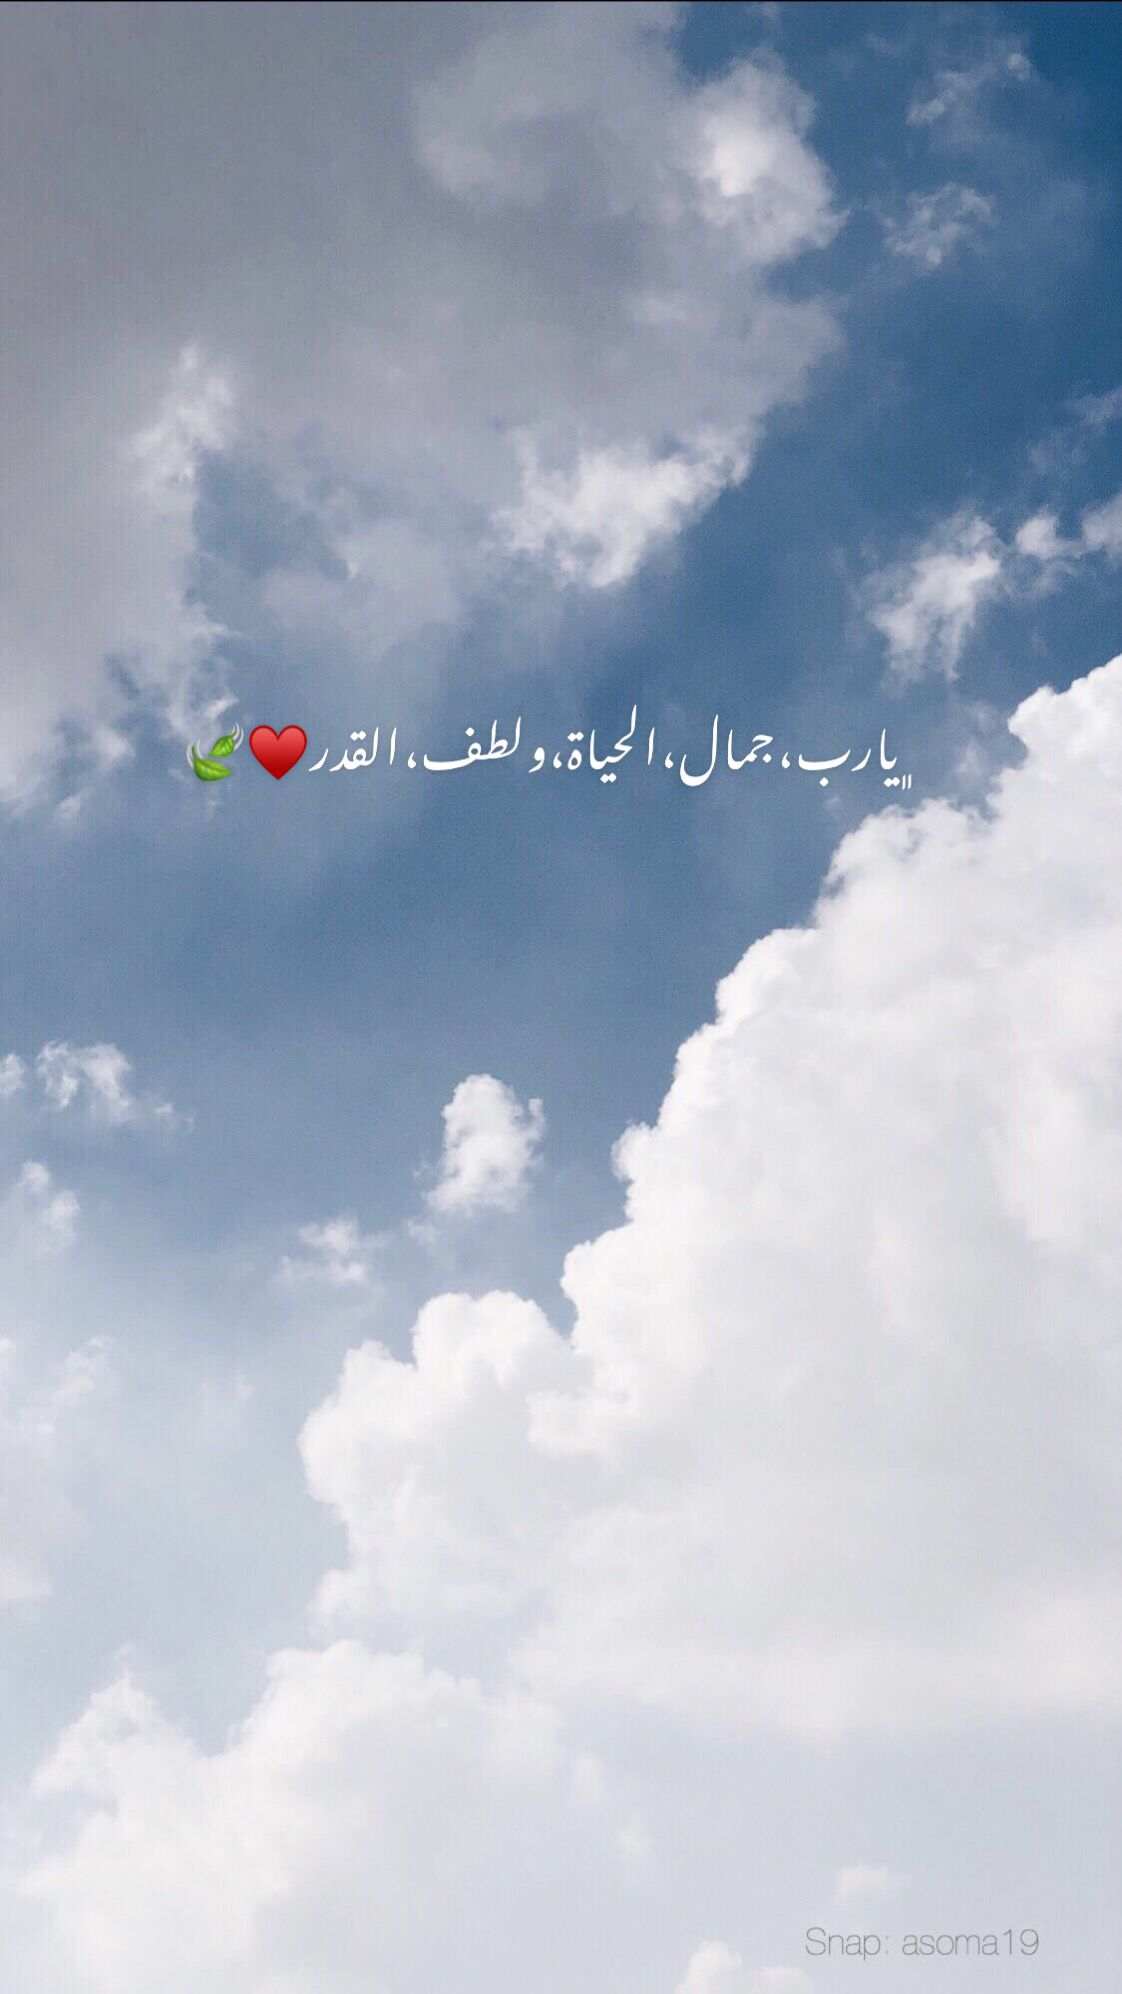 Pin By Semsem On يوميات Cover Photo Quotes Photo Quotes Love Smile Quotes